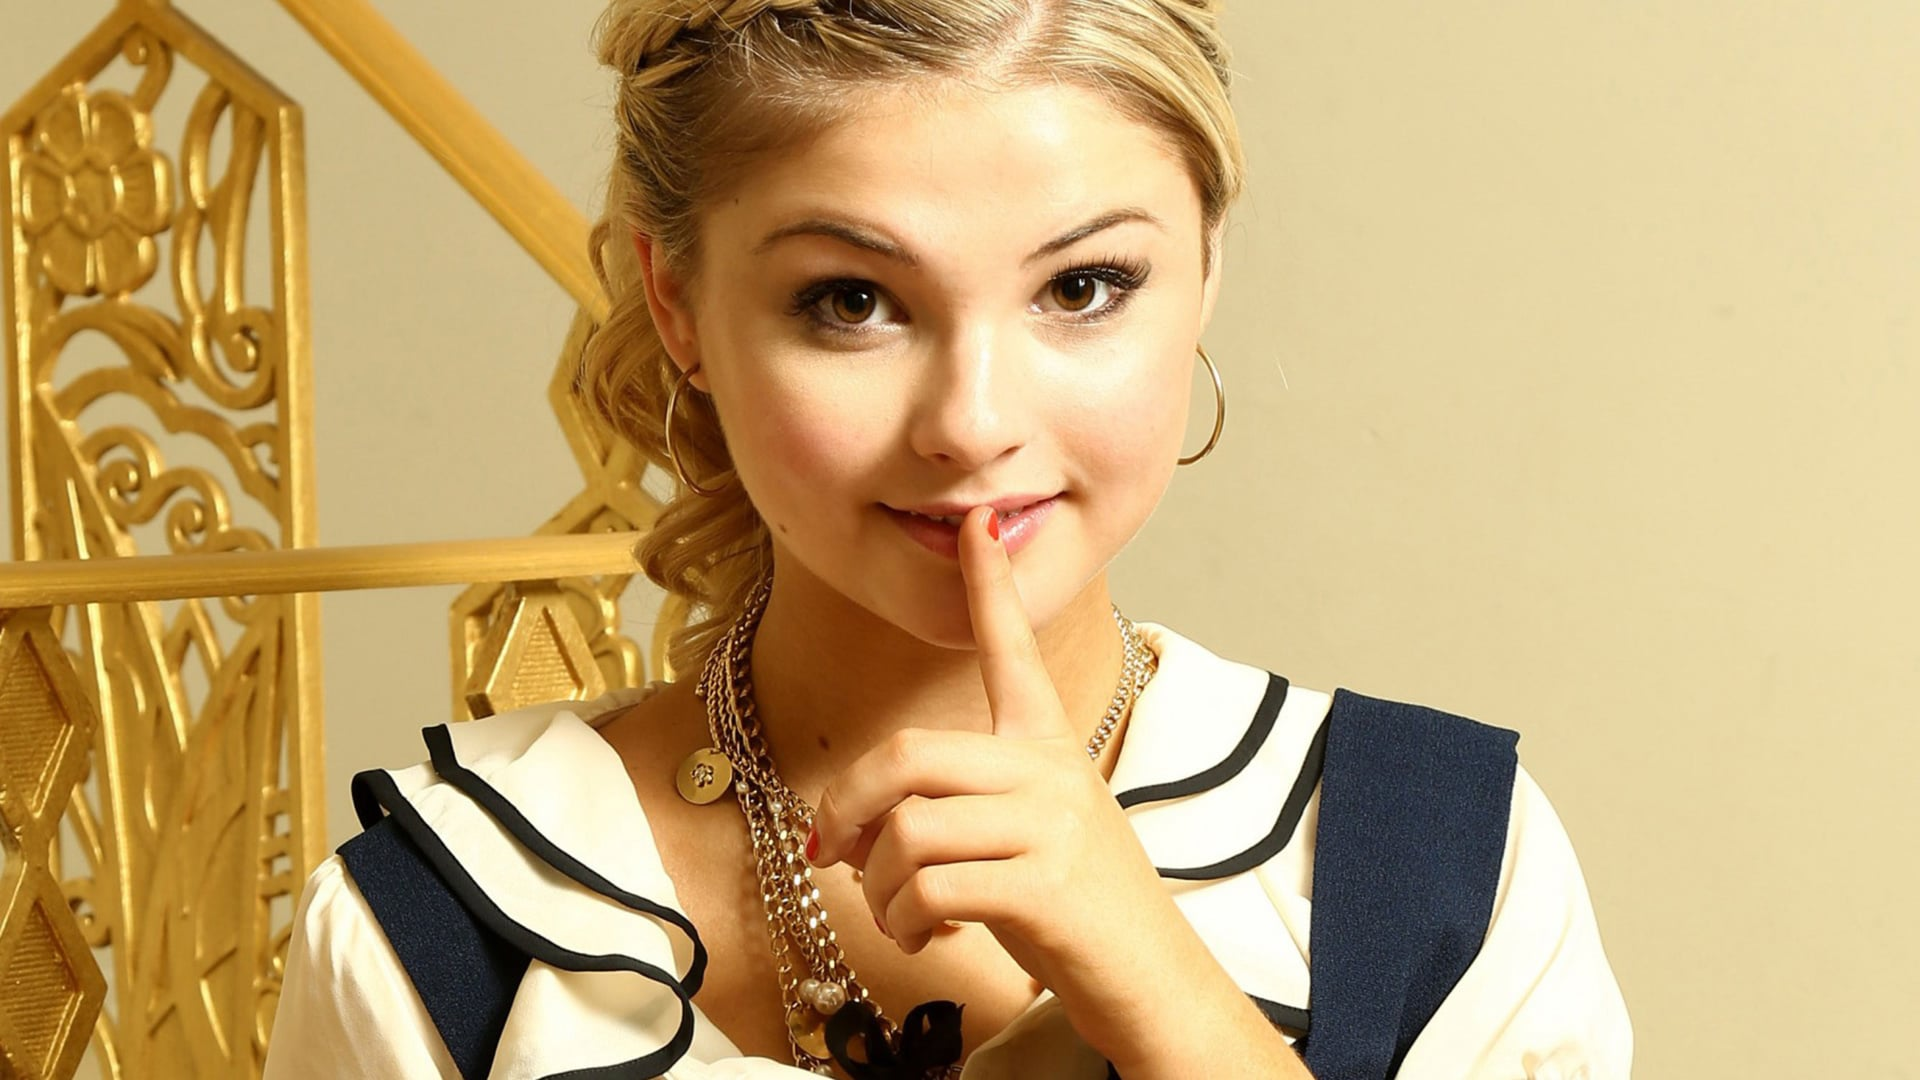 stefanie scott desktop wallpaper 71640